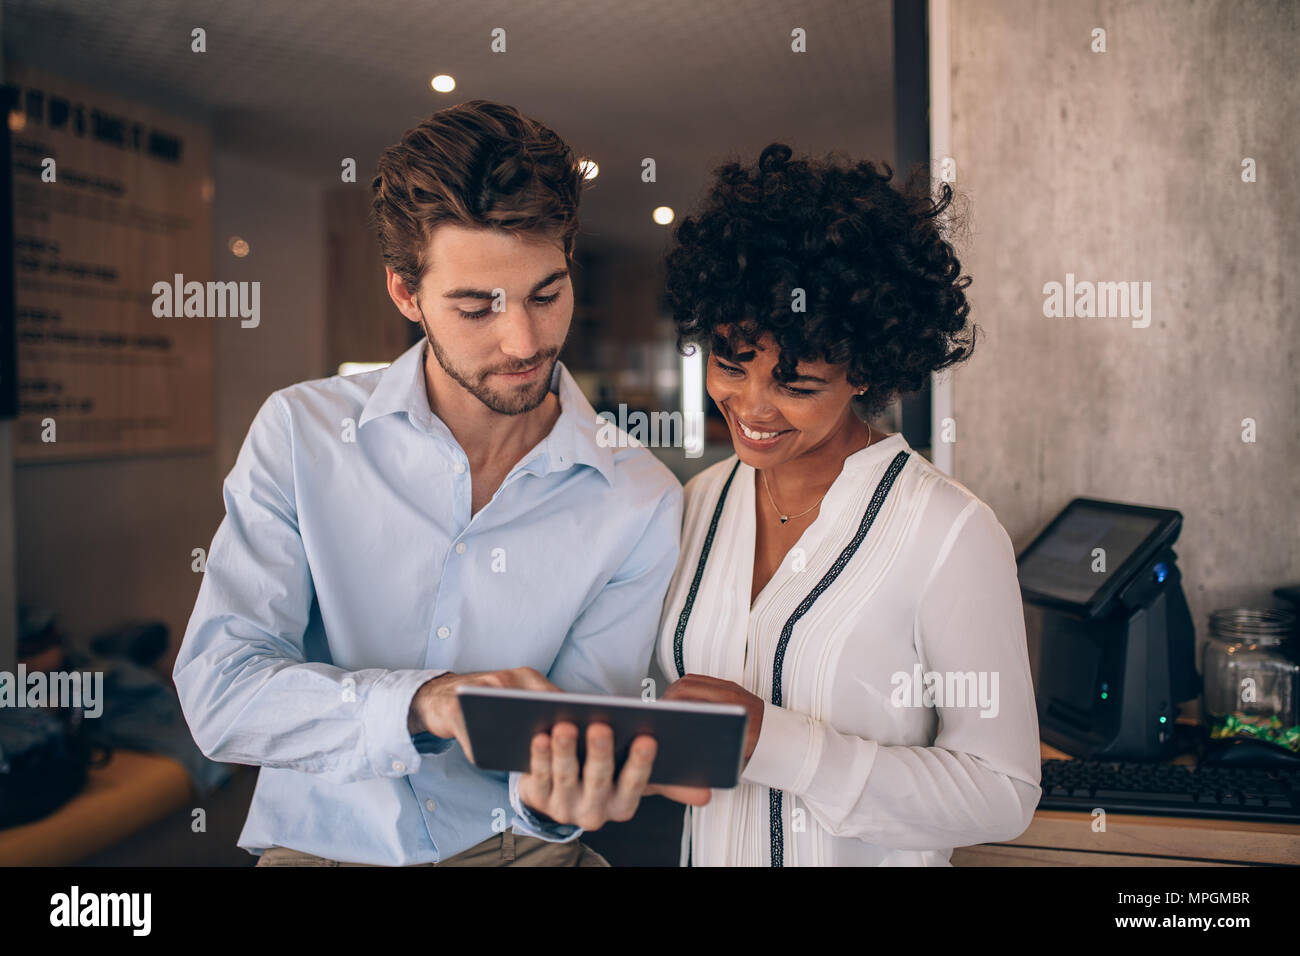 Two restaurant business partners standing together and looking at digital tablet. Man and woman using digital tablet in a cafe. Stock Photo